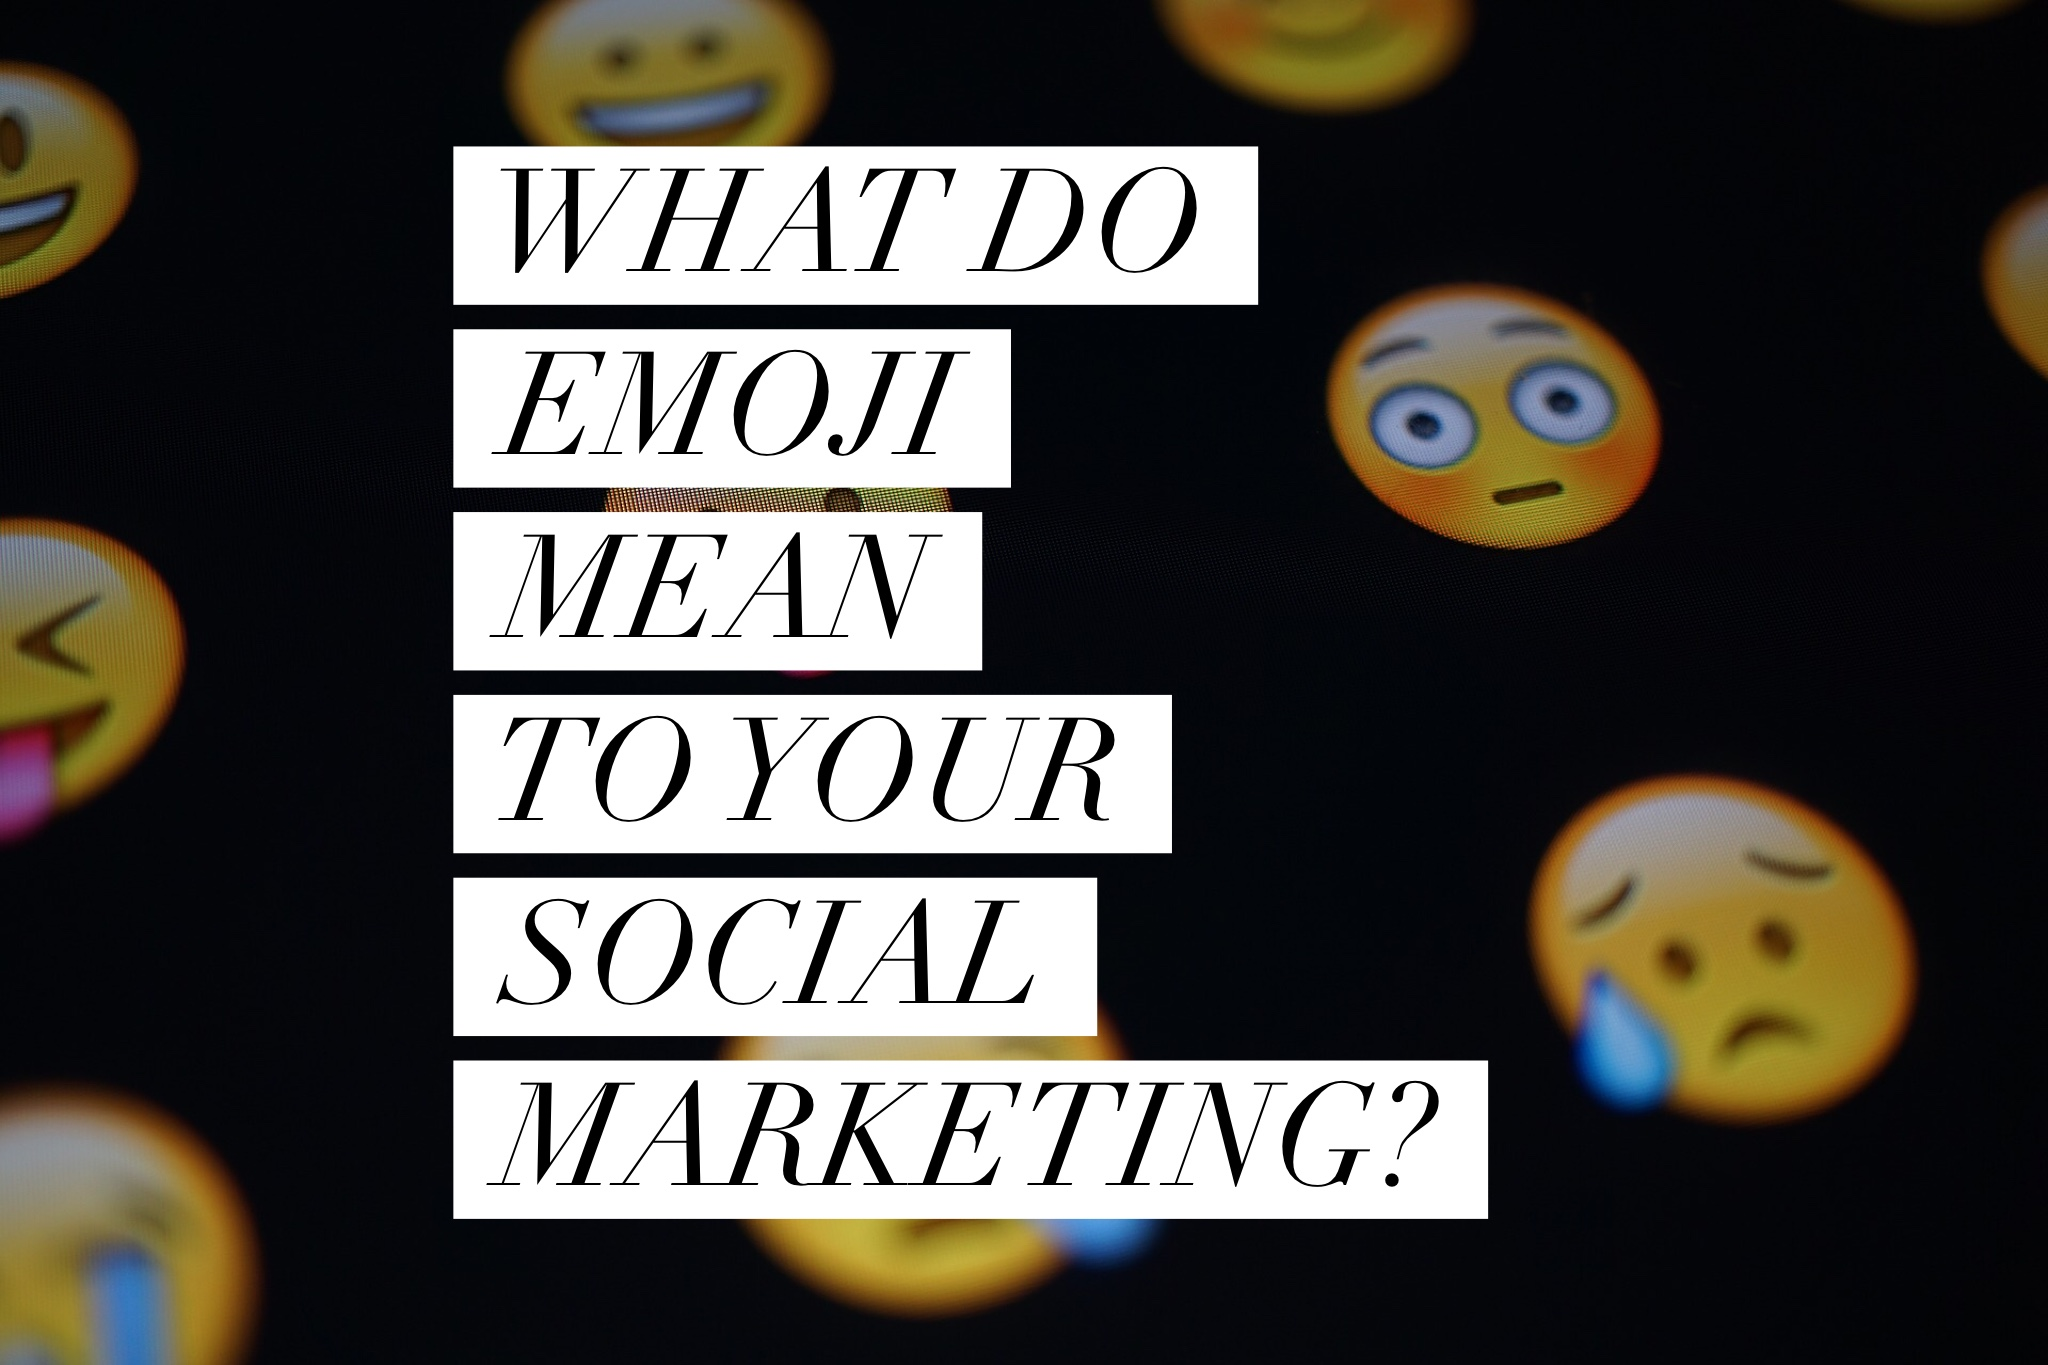 What do emoji mean to your social marketing?